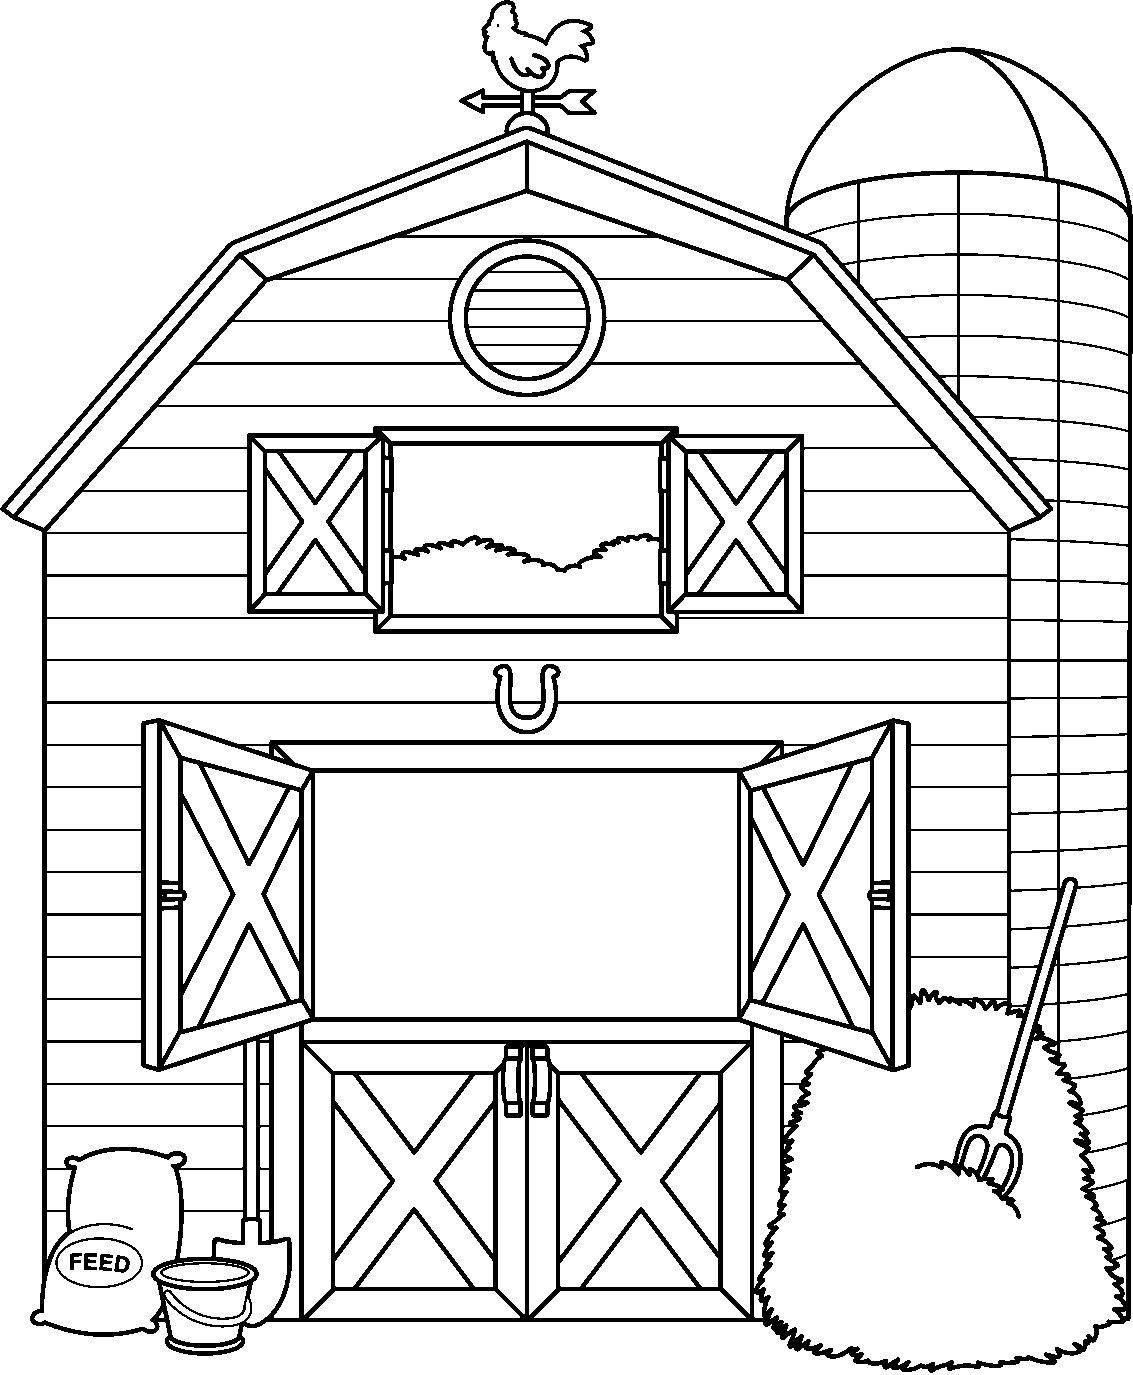 Red Barn Clipart Free Download Clip Art Library Farm Coloring Pages Farm Animal Coloring Pages Farm Quilt